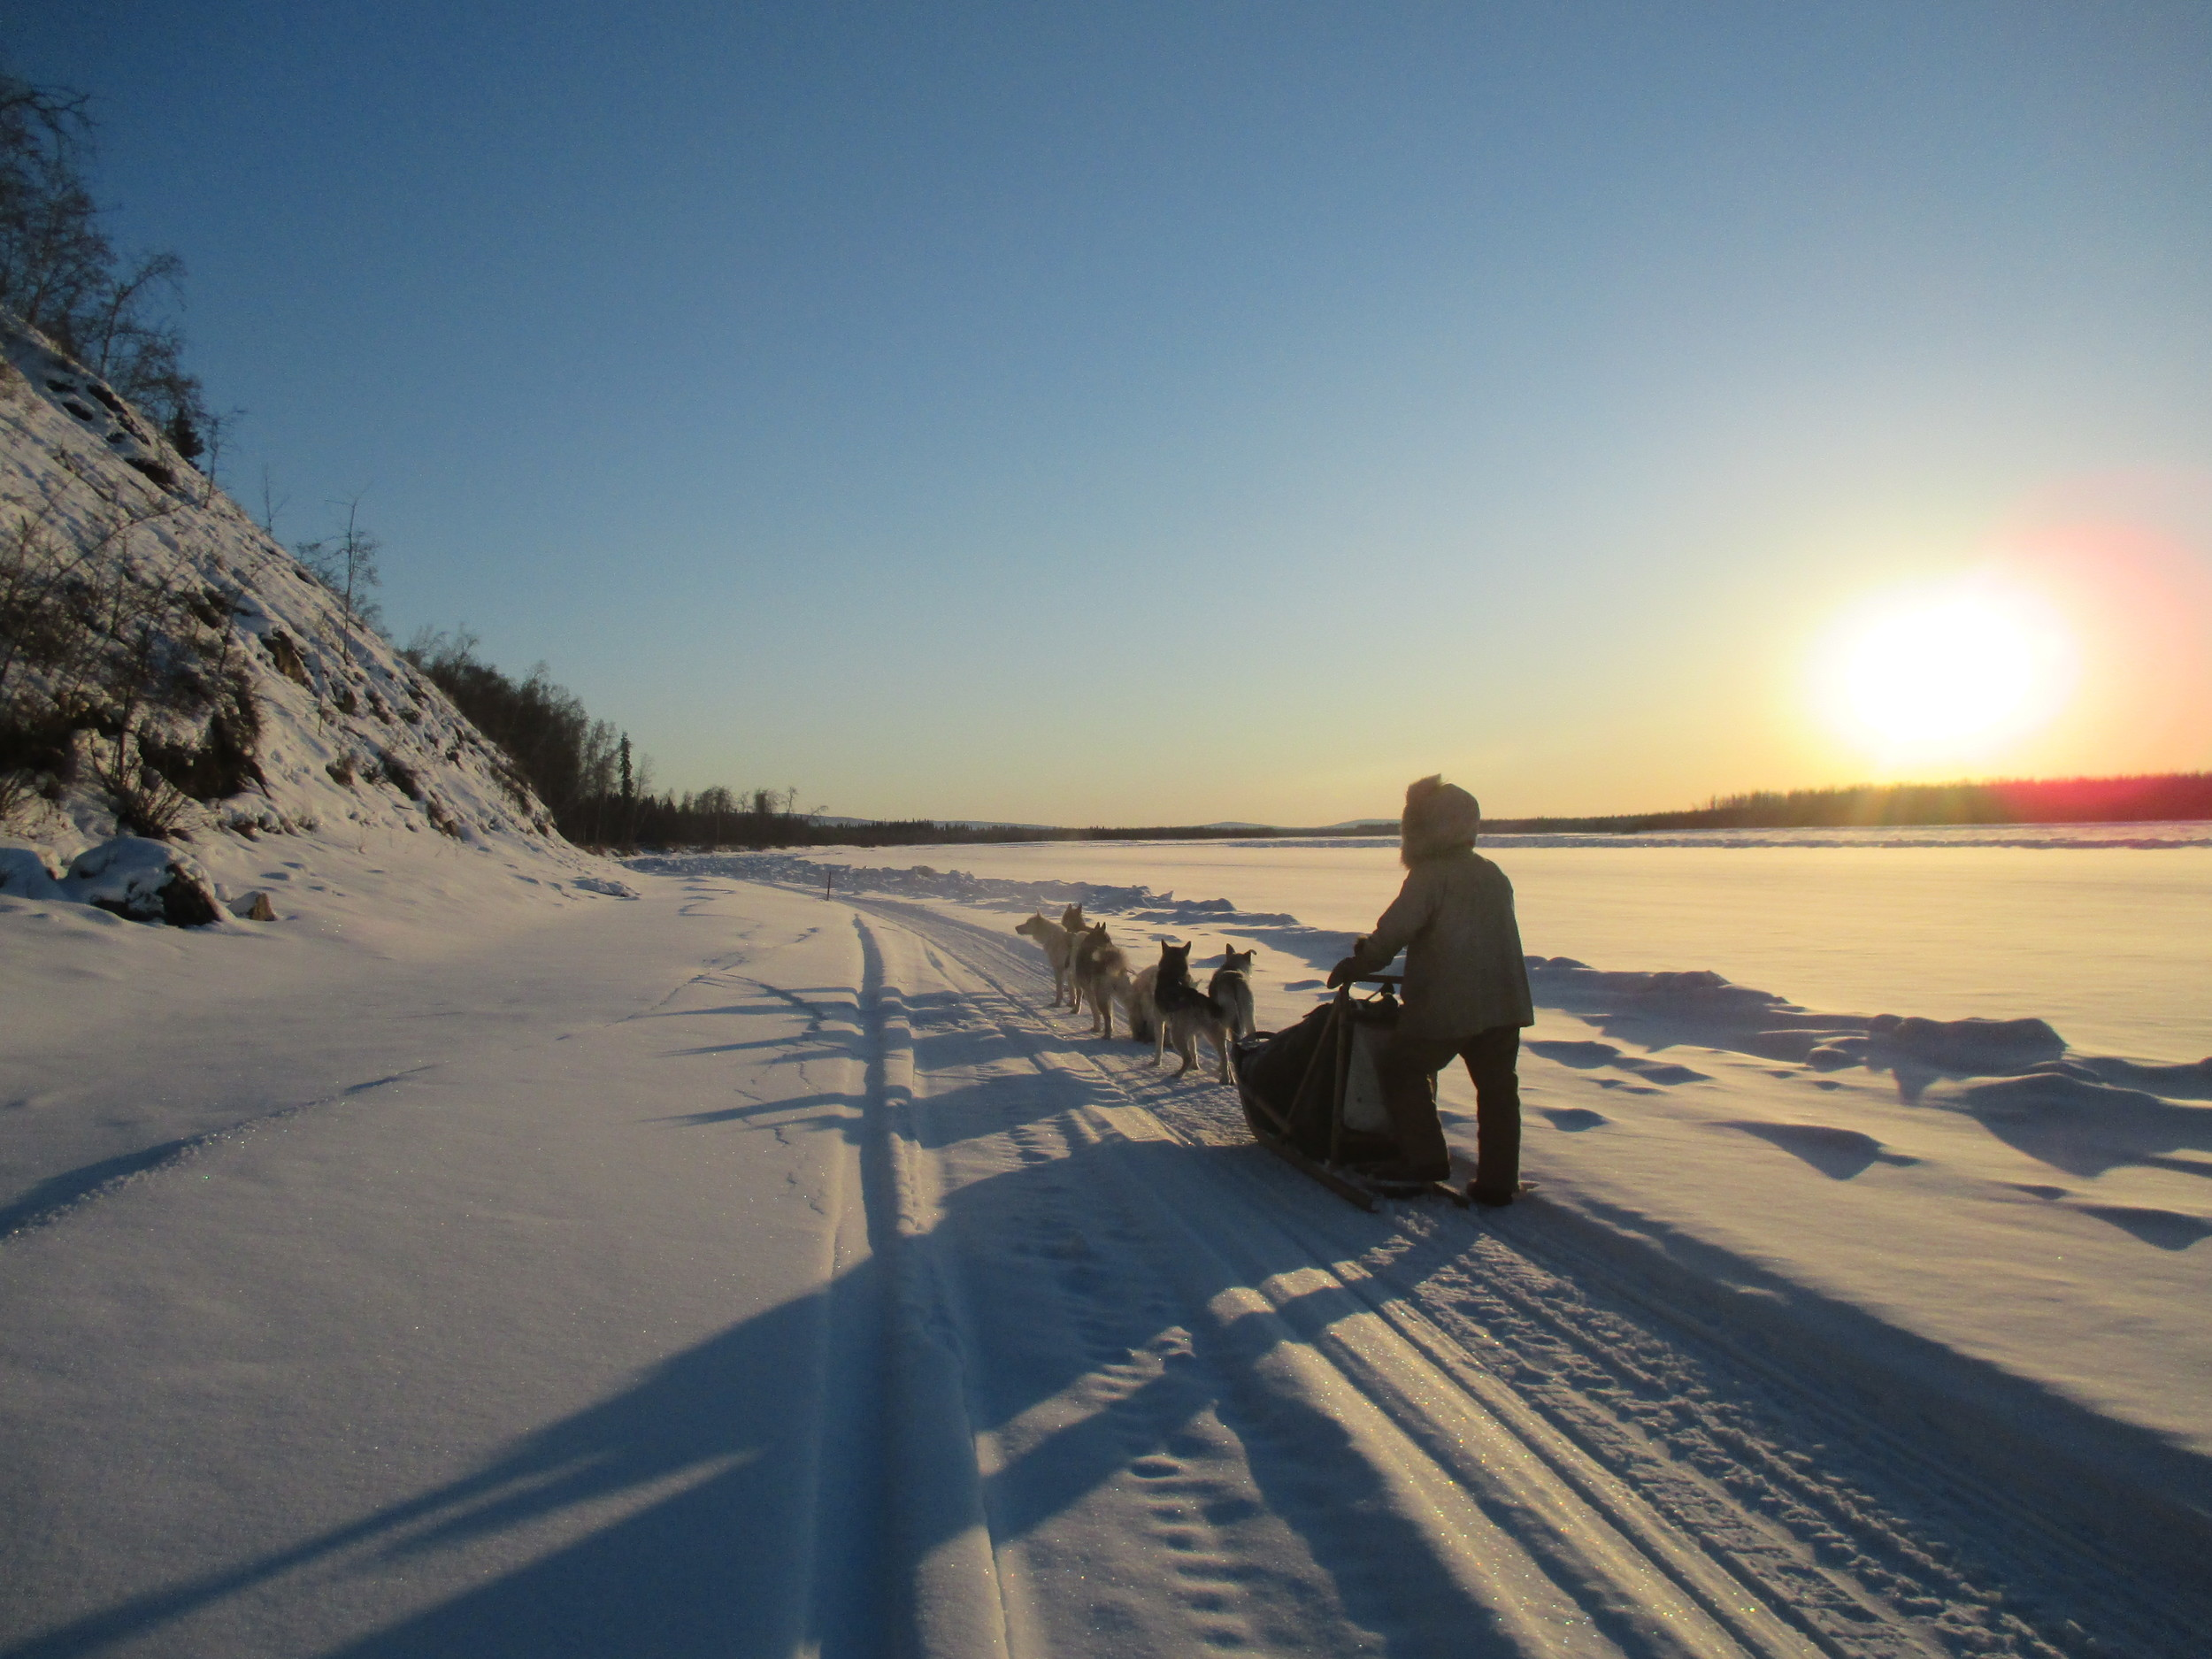 david mushes the dogs along the much cooler than everywhere else Tanana river near manley alaska